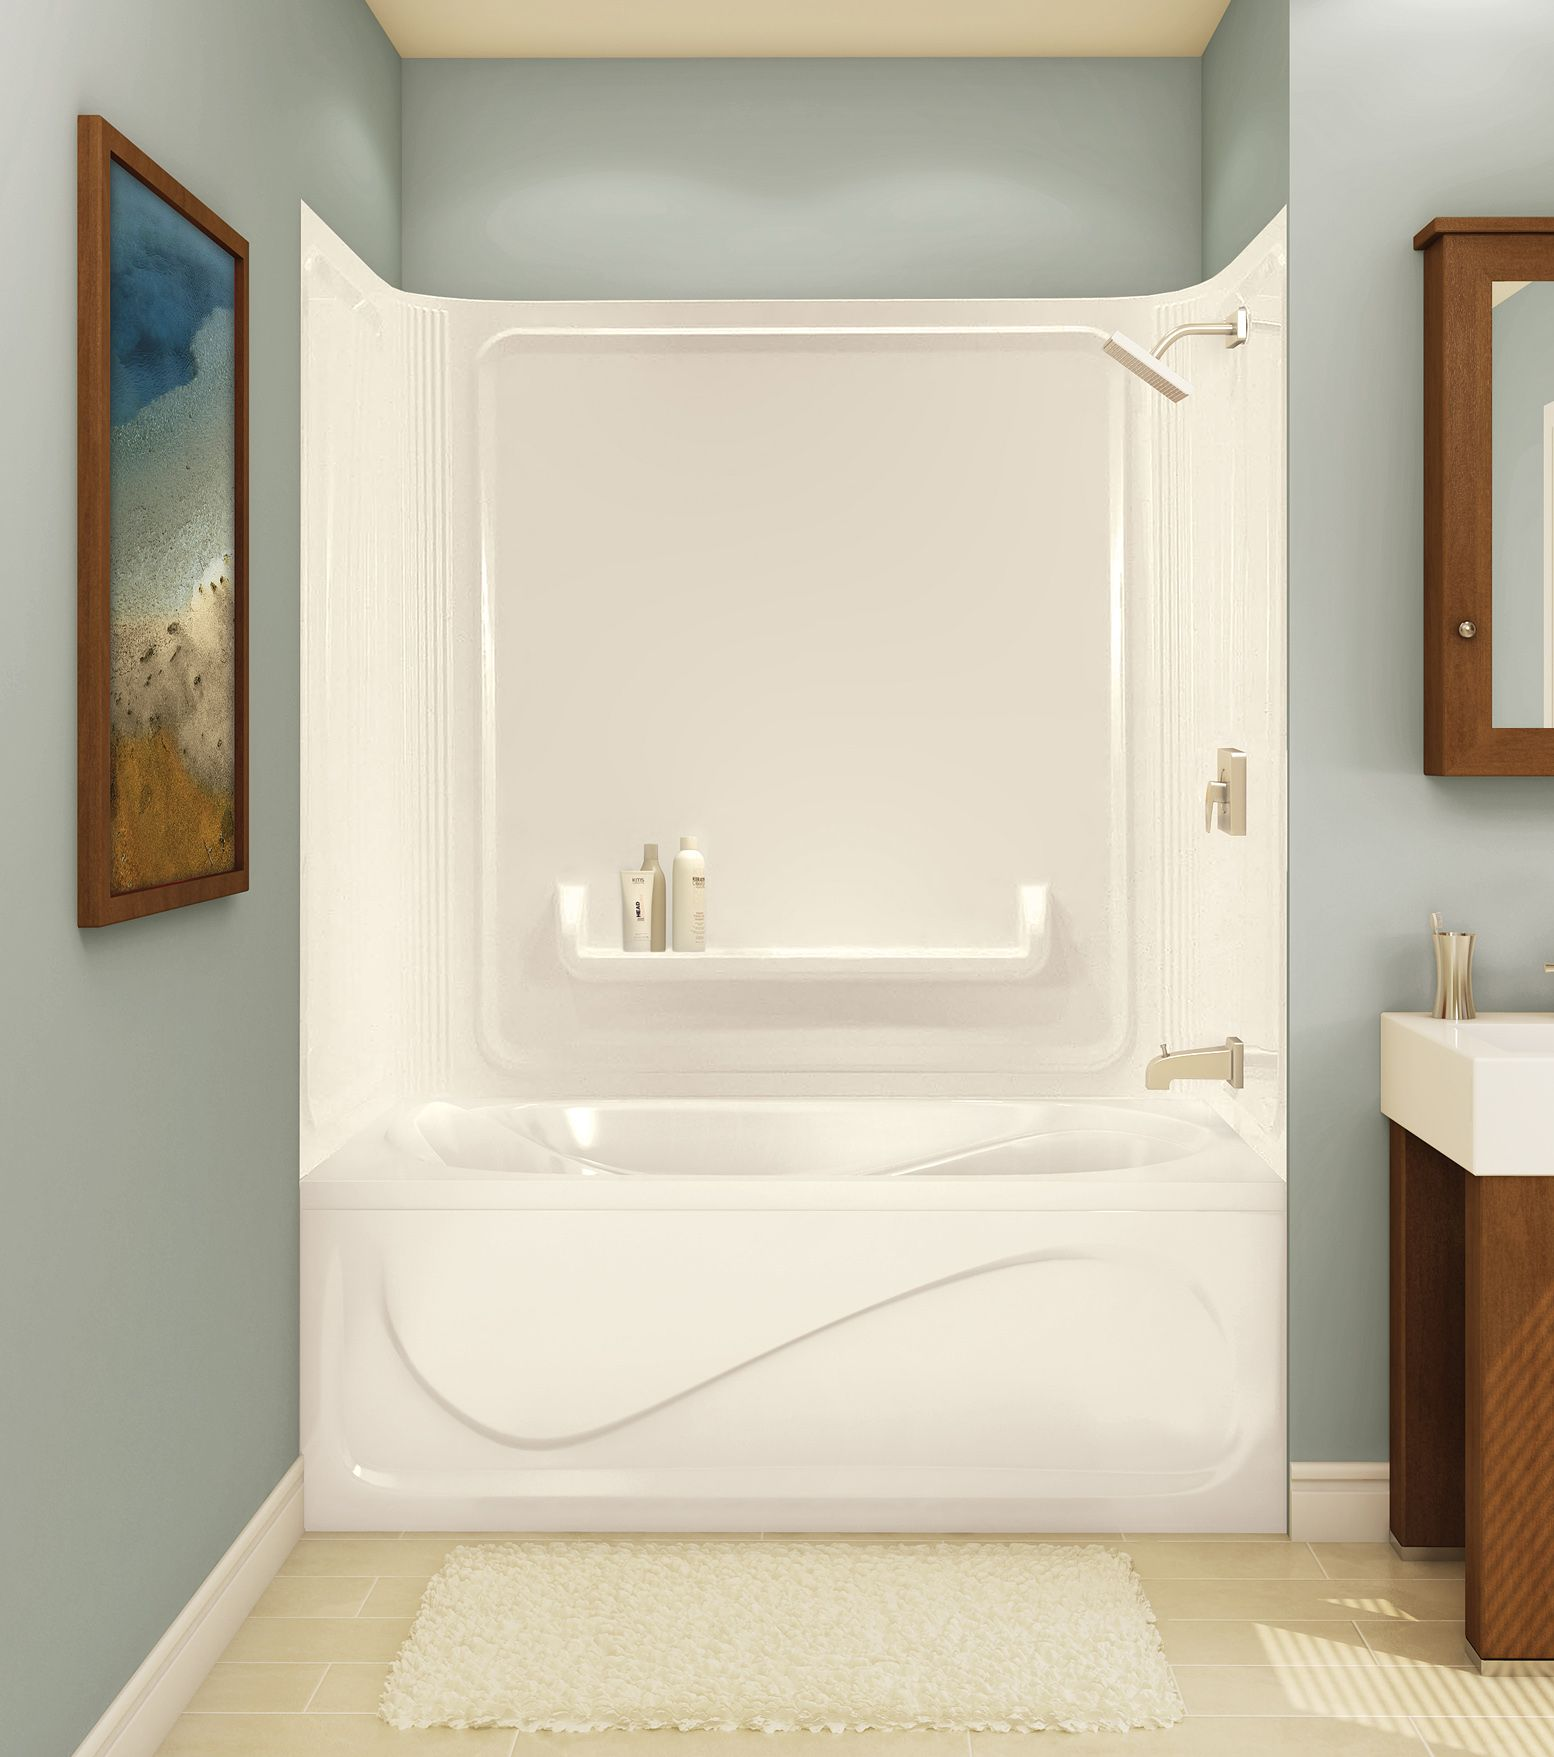 59 Chateau Tub walls shower - Advanta by MAAX | maax | Pinterest ...